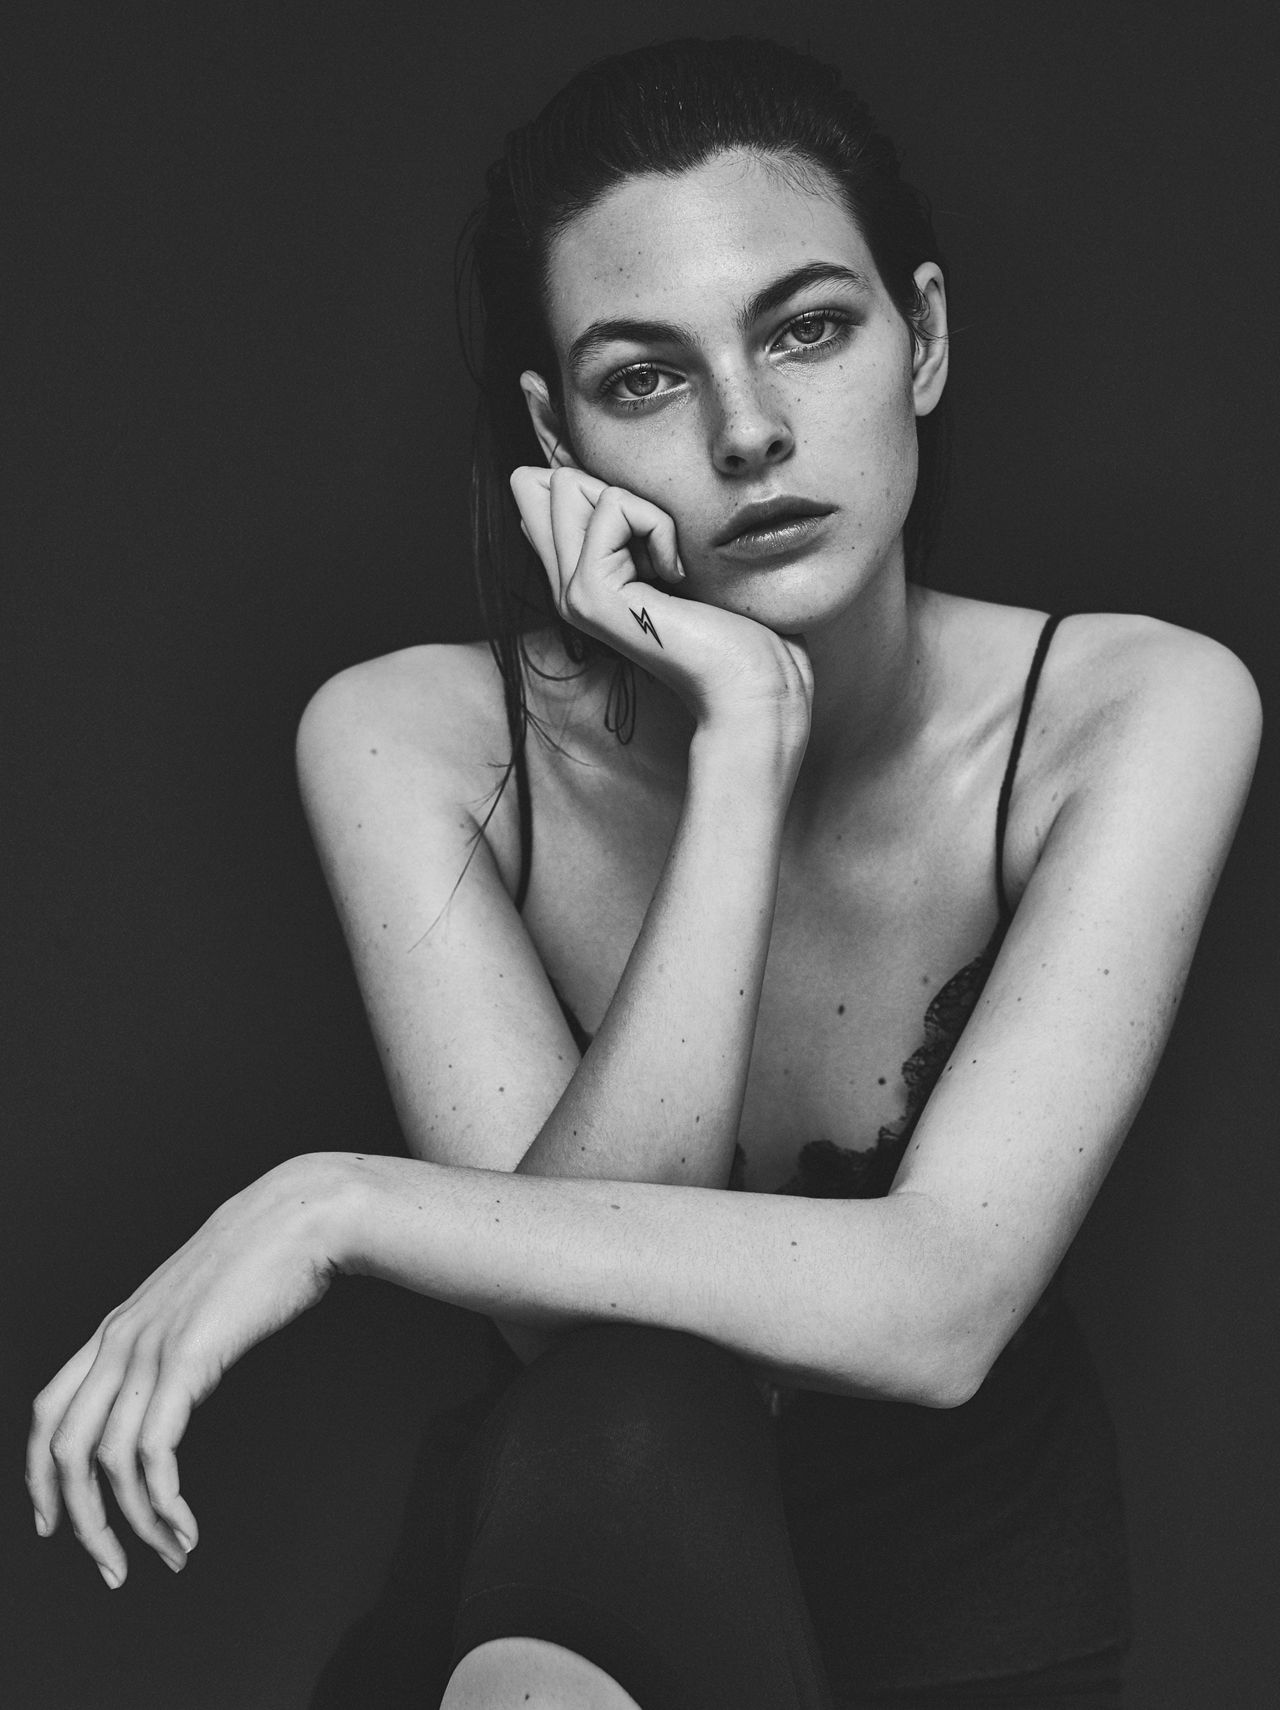 Vittoria ceretti the society by emma tempest via backspaceforward tumblr com